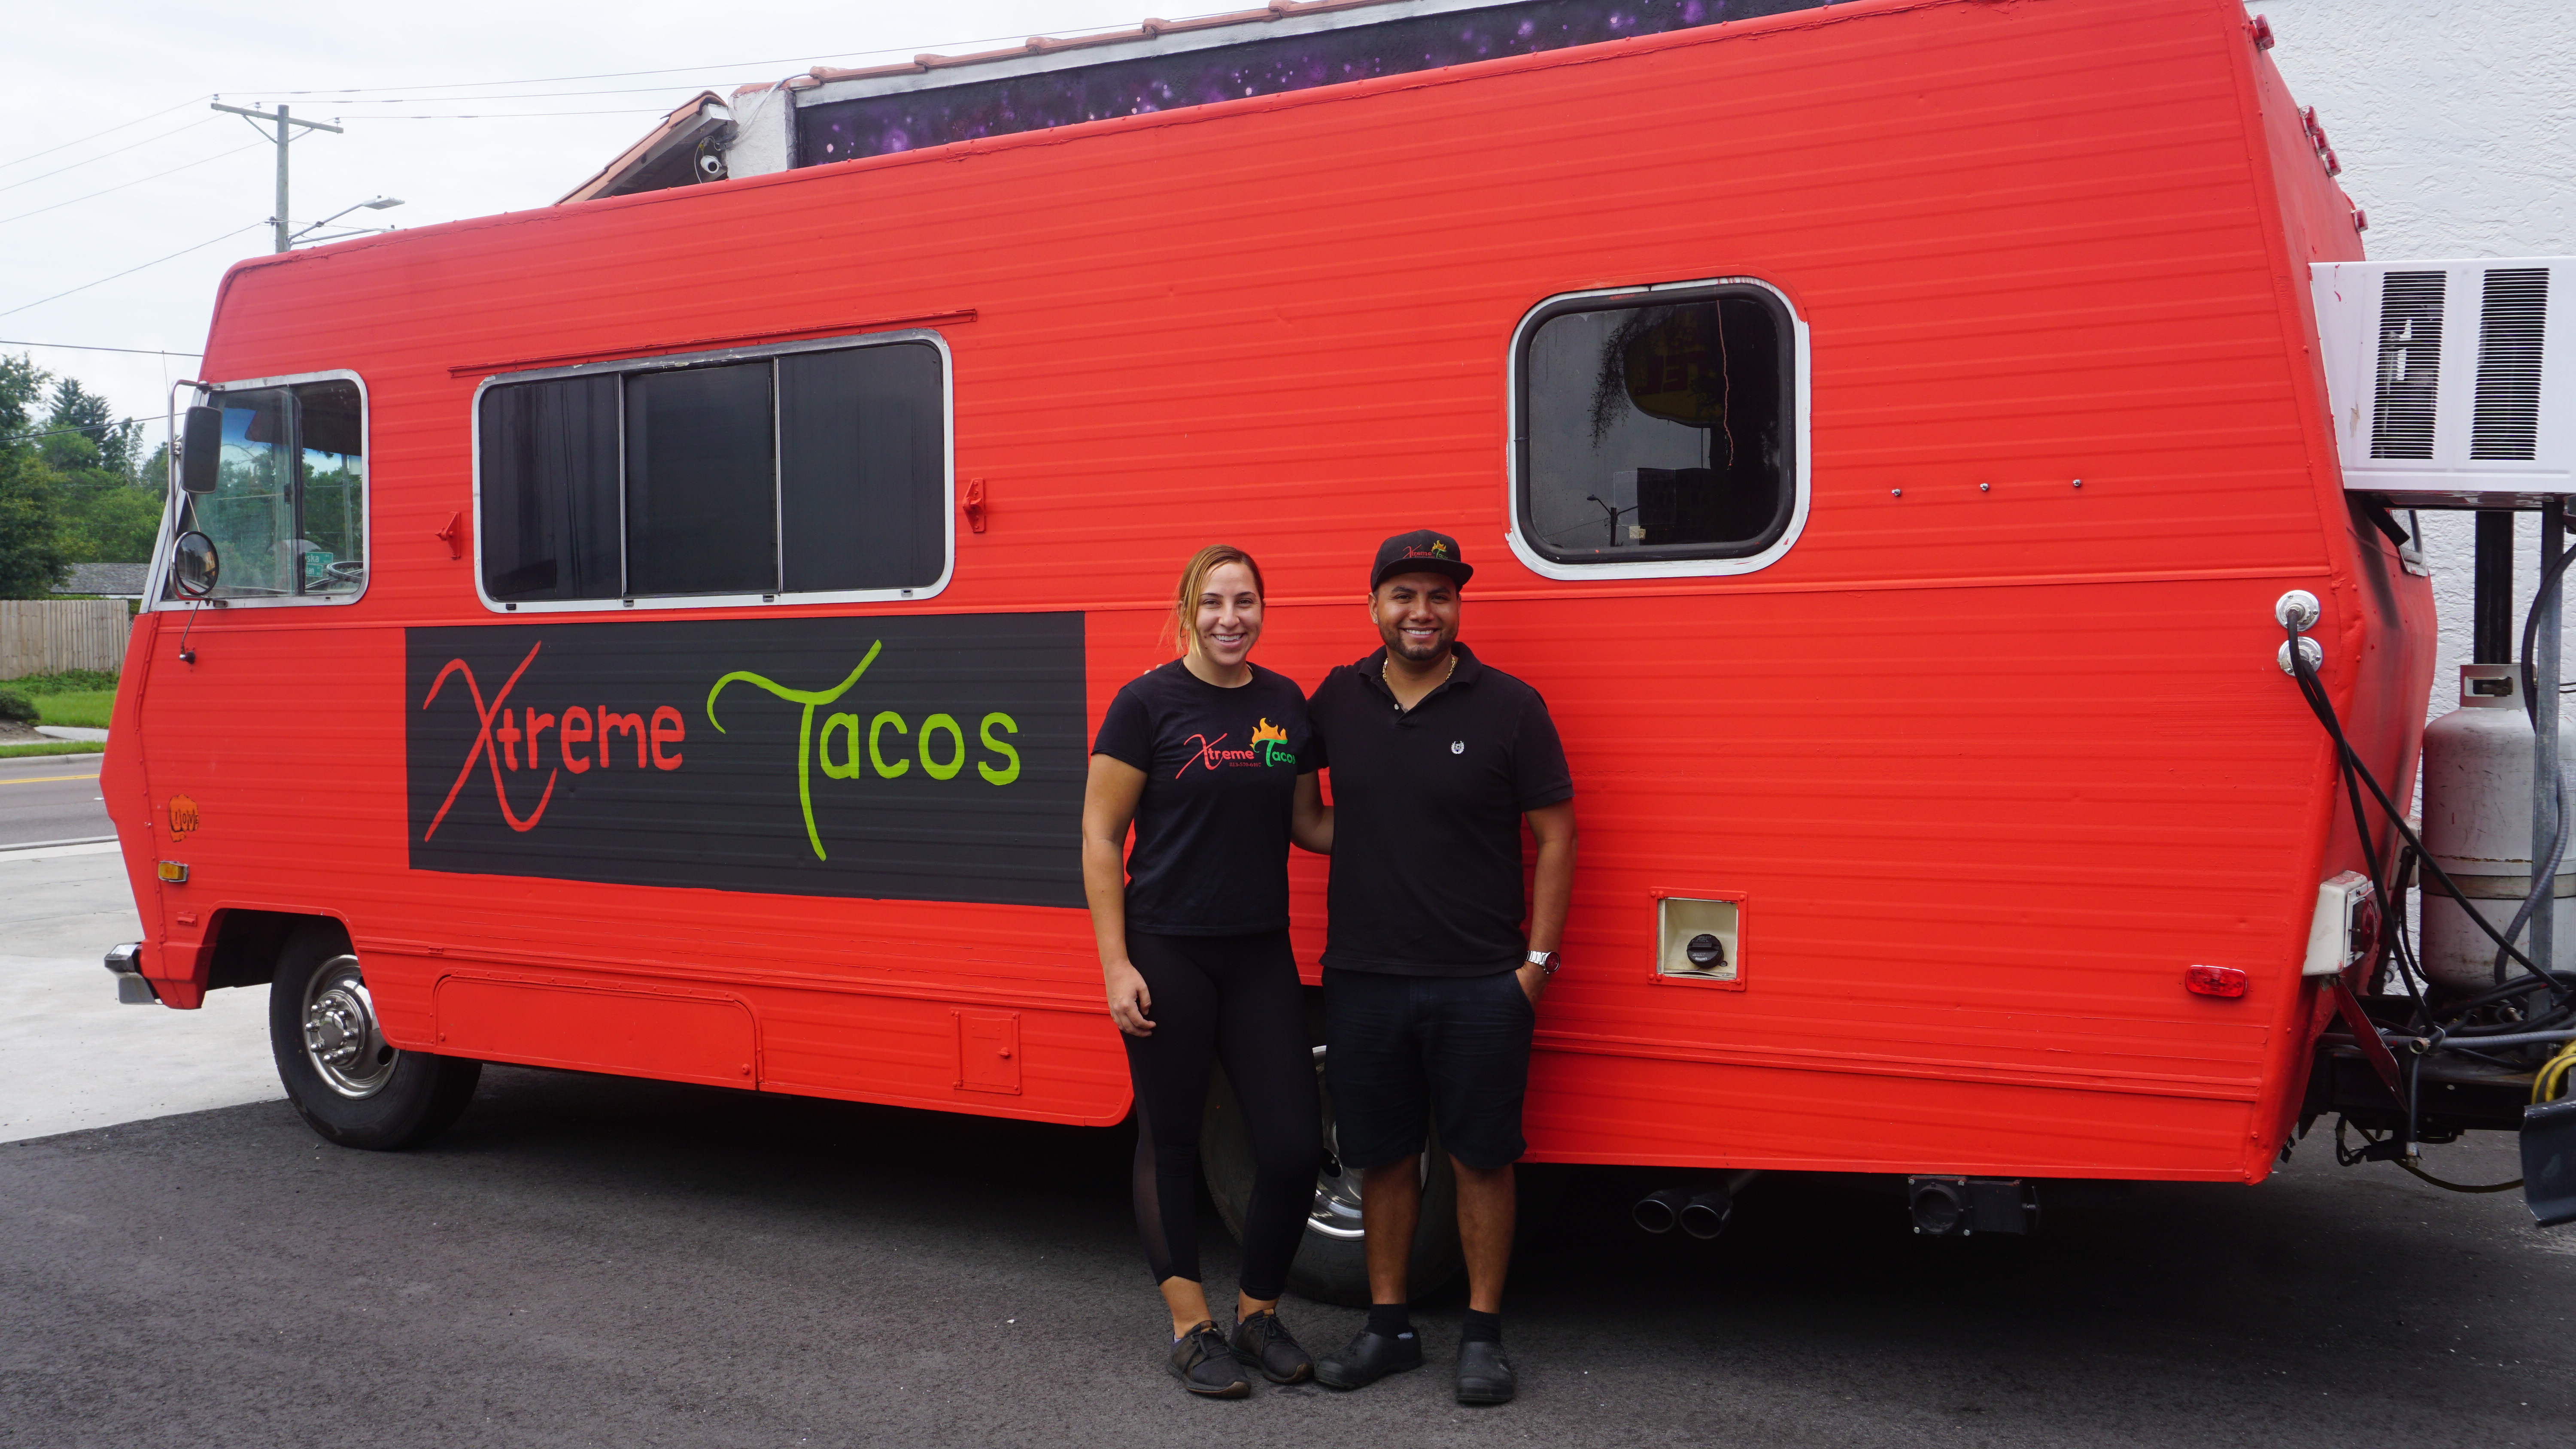 Tampa's Xtreme Tacos to open new location in Seminole Heights